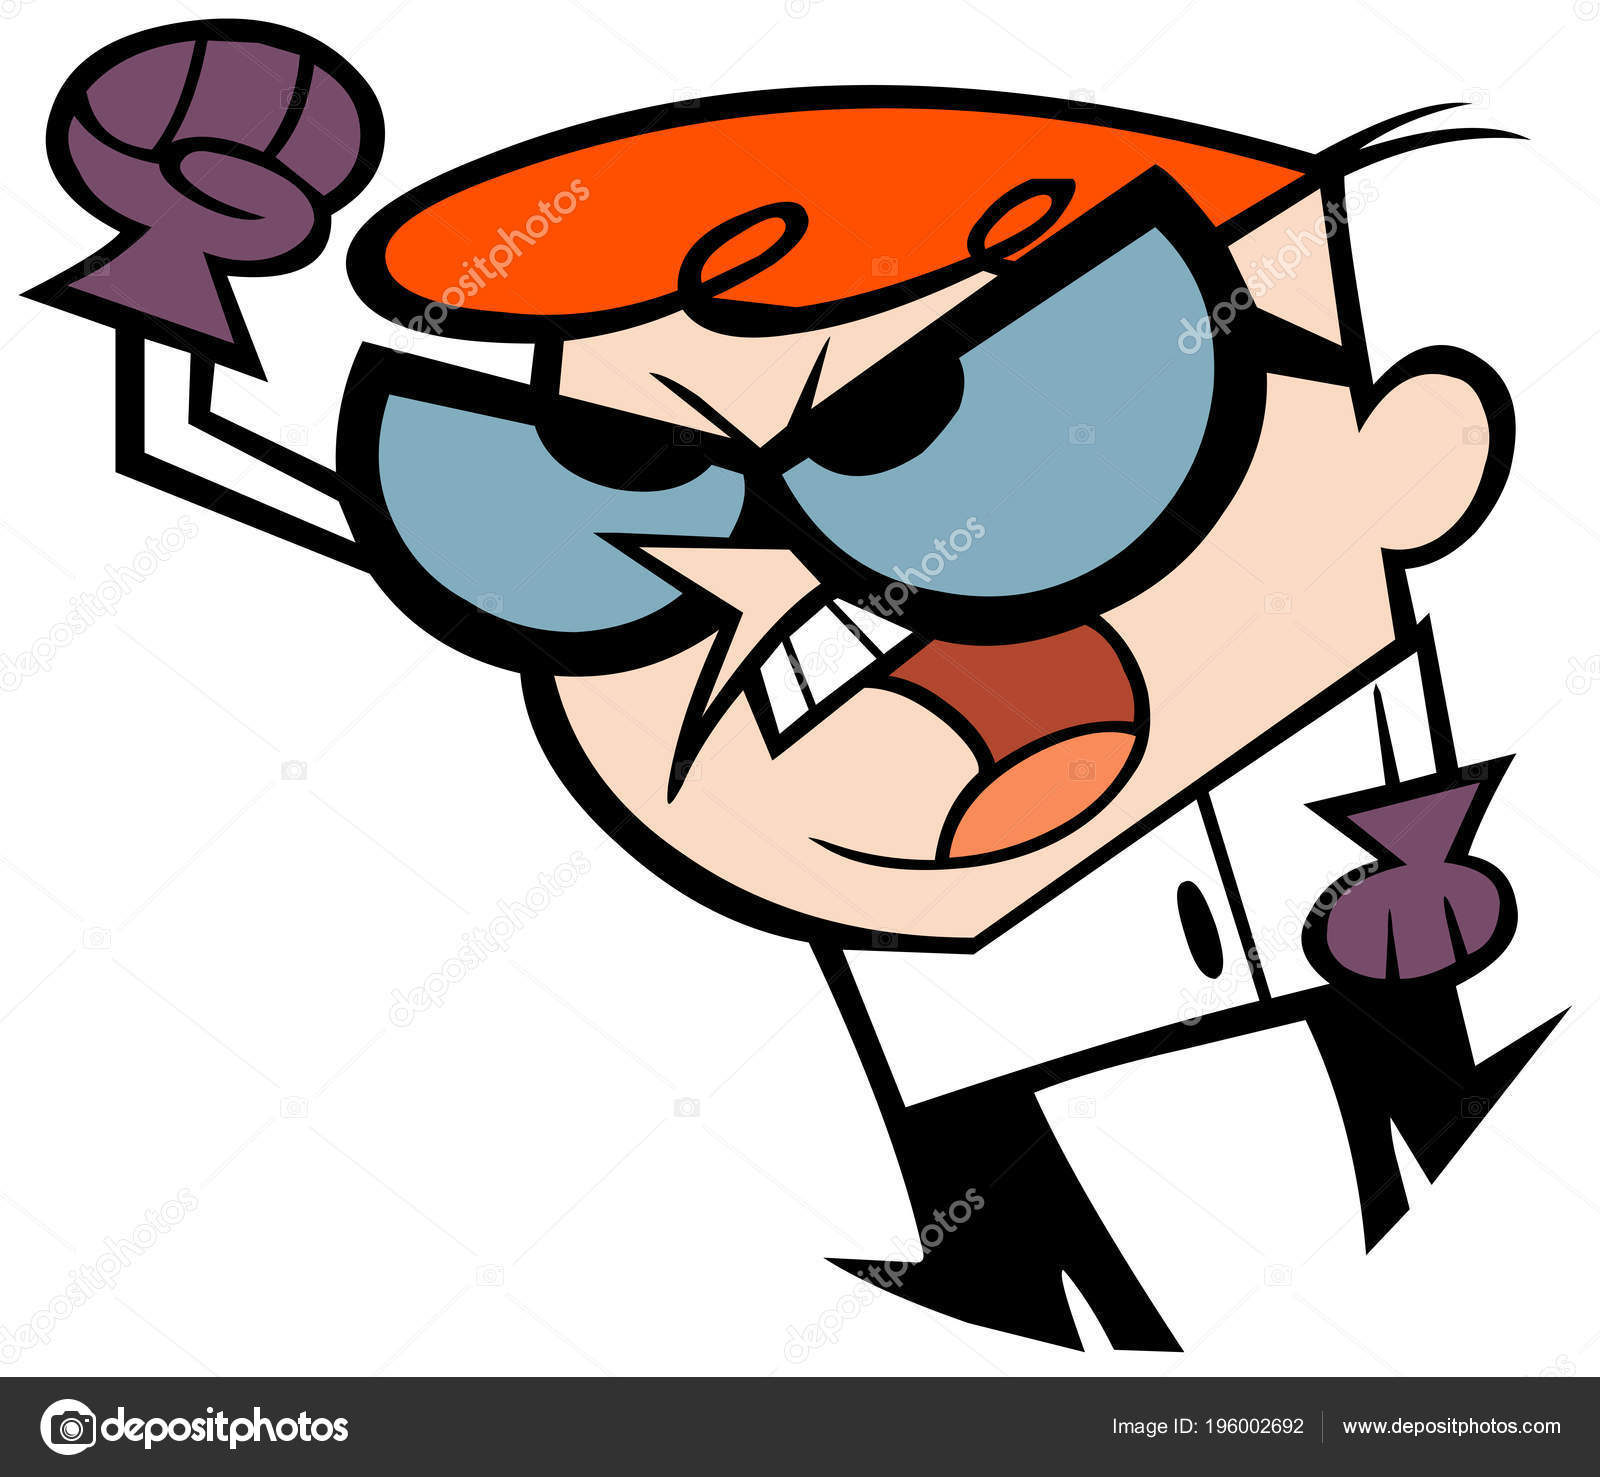 Dexter Laboratory Angry Kids Cartoon Stock Editorial Photo